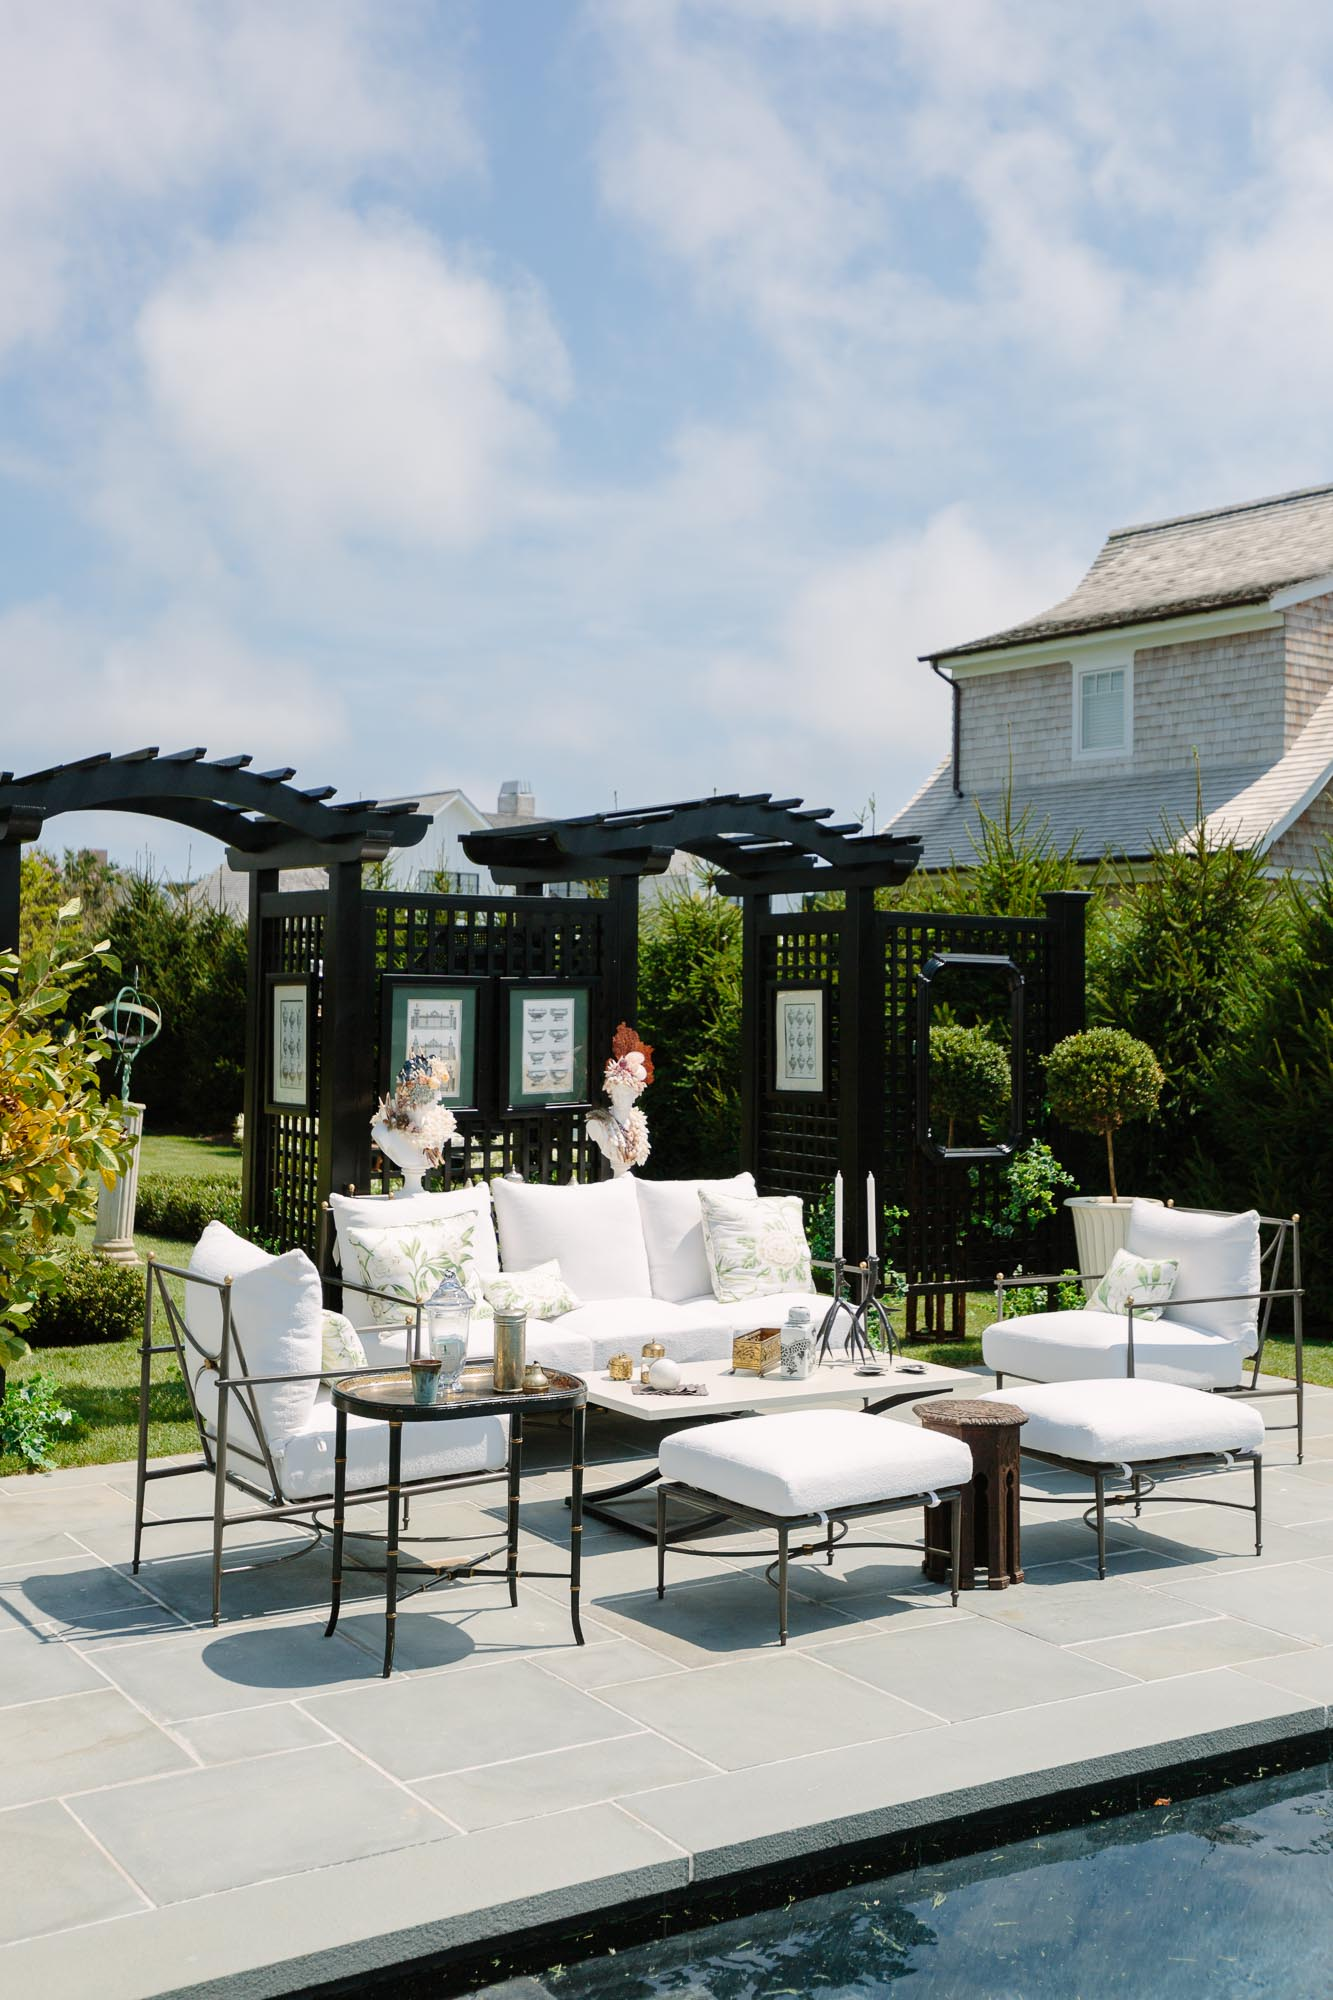 2019 Hampton Designer Showhouse featured by top US style blog, York Avenue: image of Brittany Bromley outdoor pool space at the 2019 Hampton Designer Showhouse